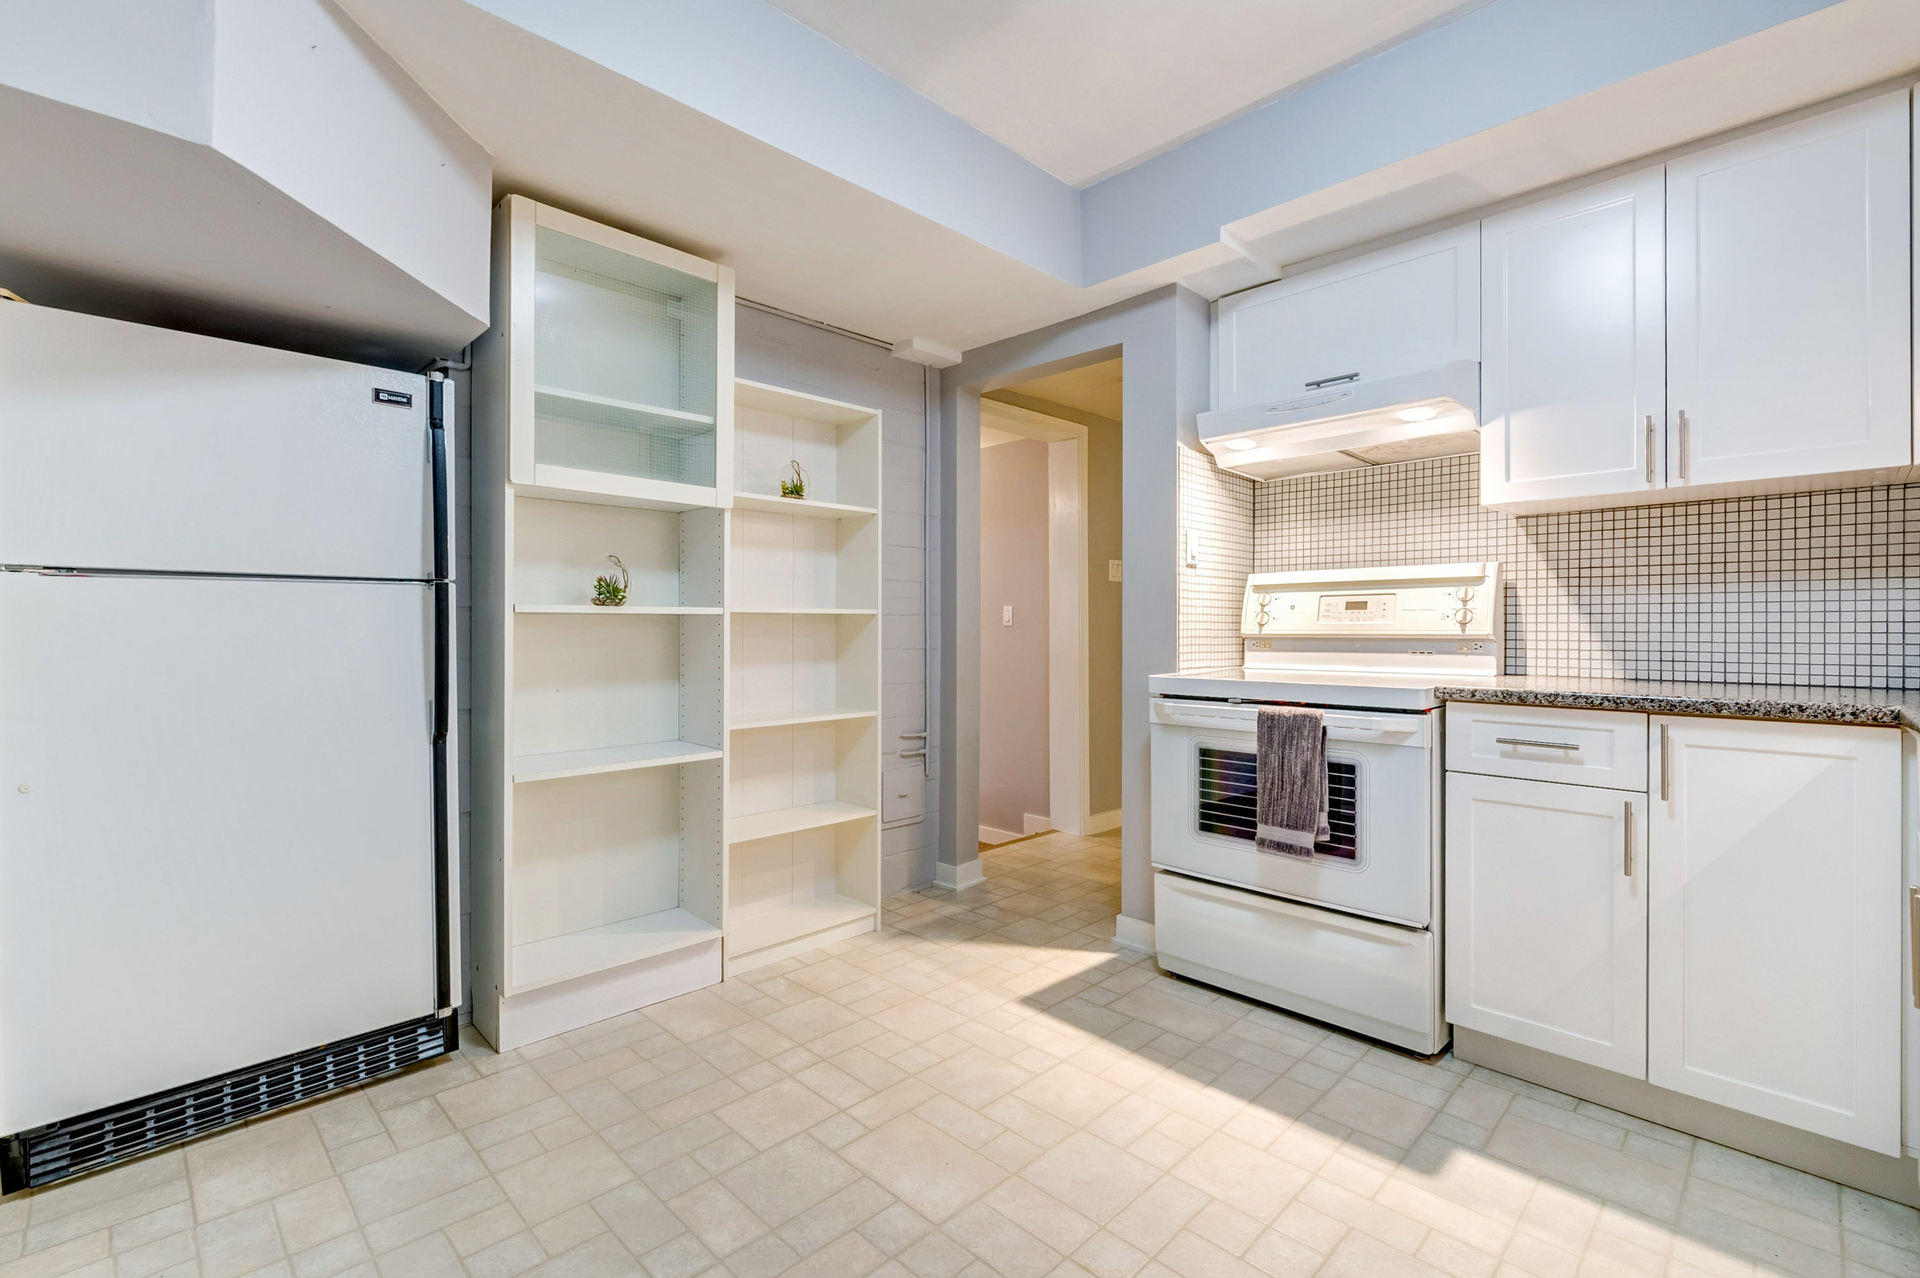 kitchen-down at 630 Sydney Avenue, Coquitlam West, Coquitlam